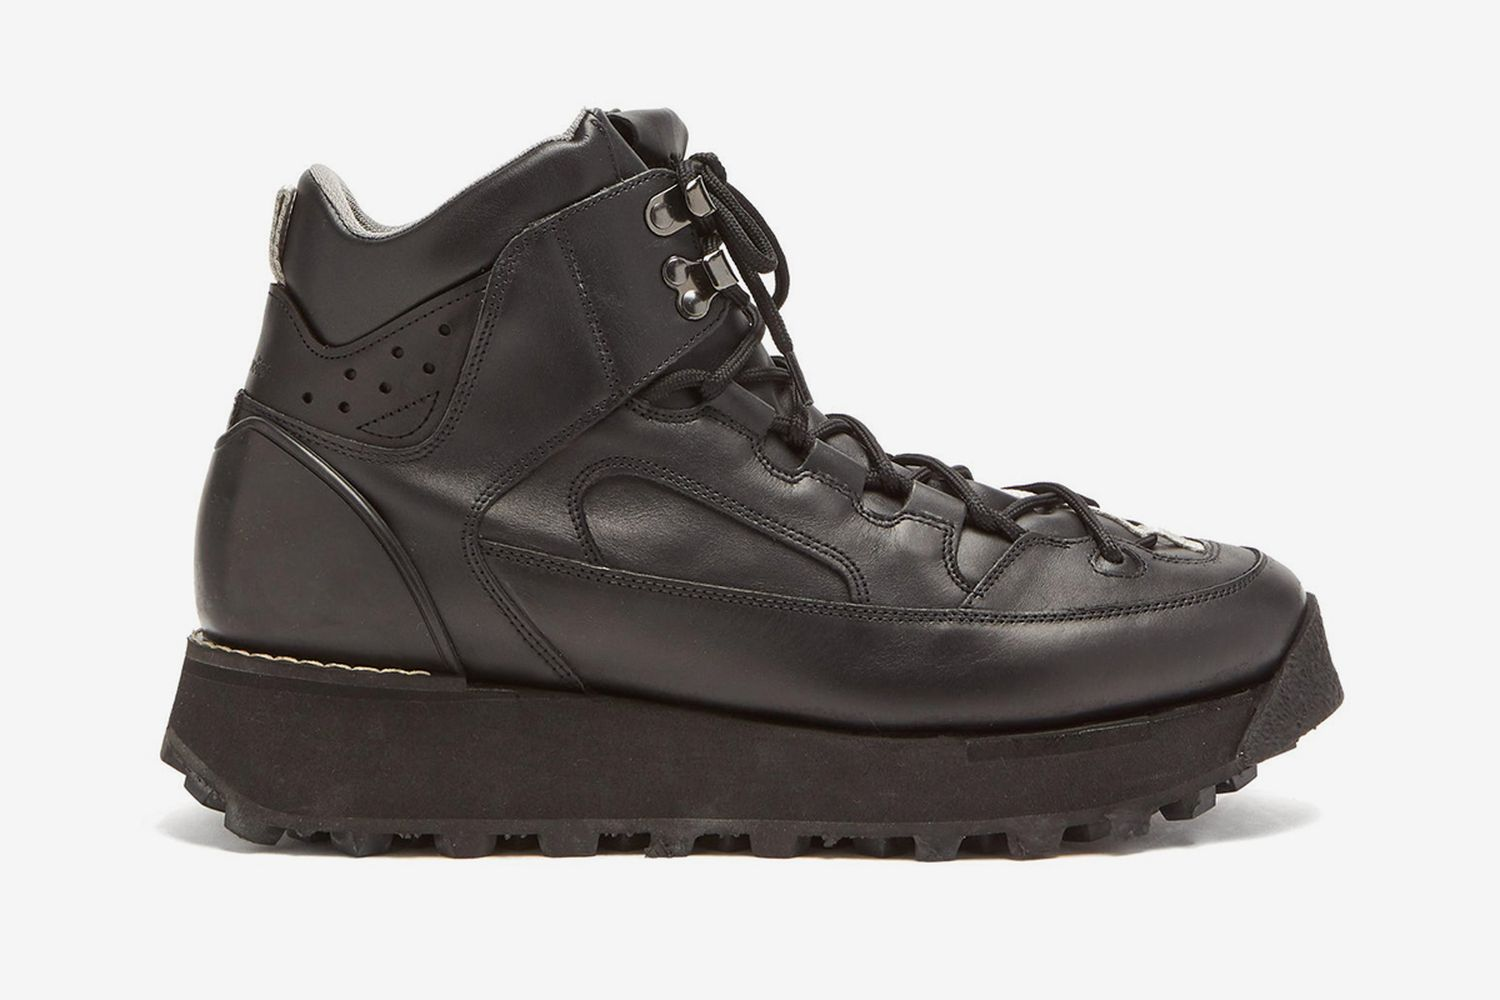 Flatform Leather Hiking Boots